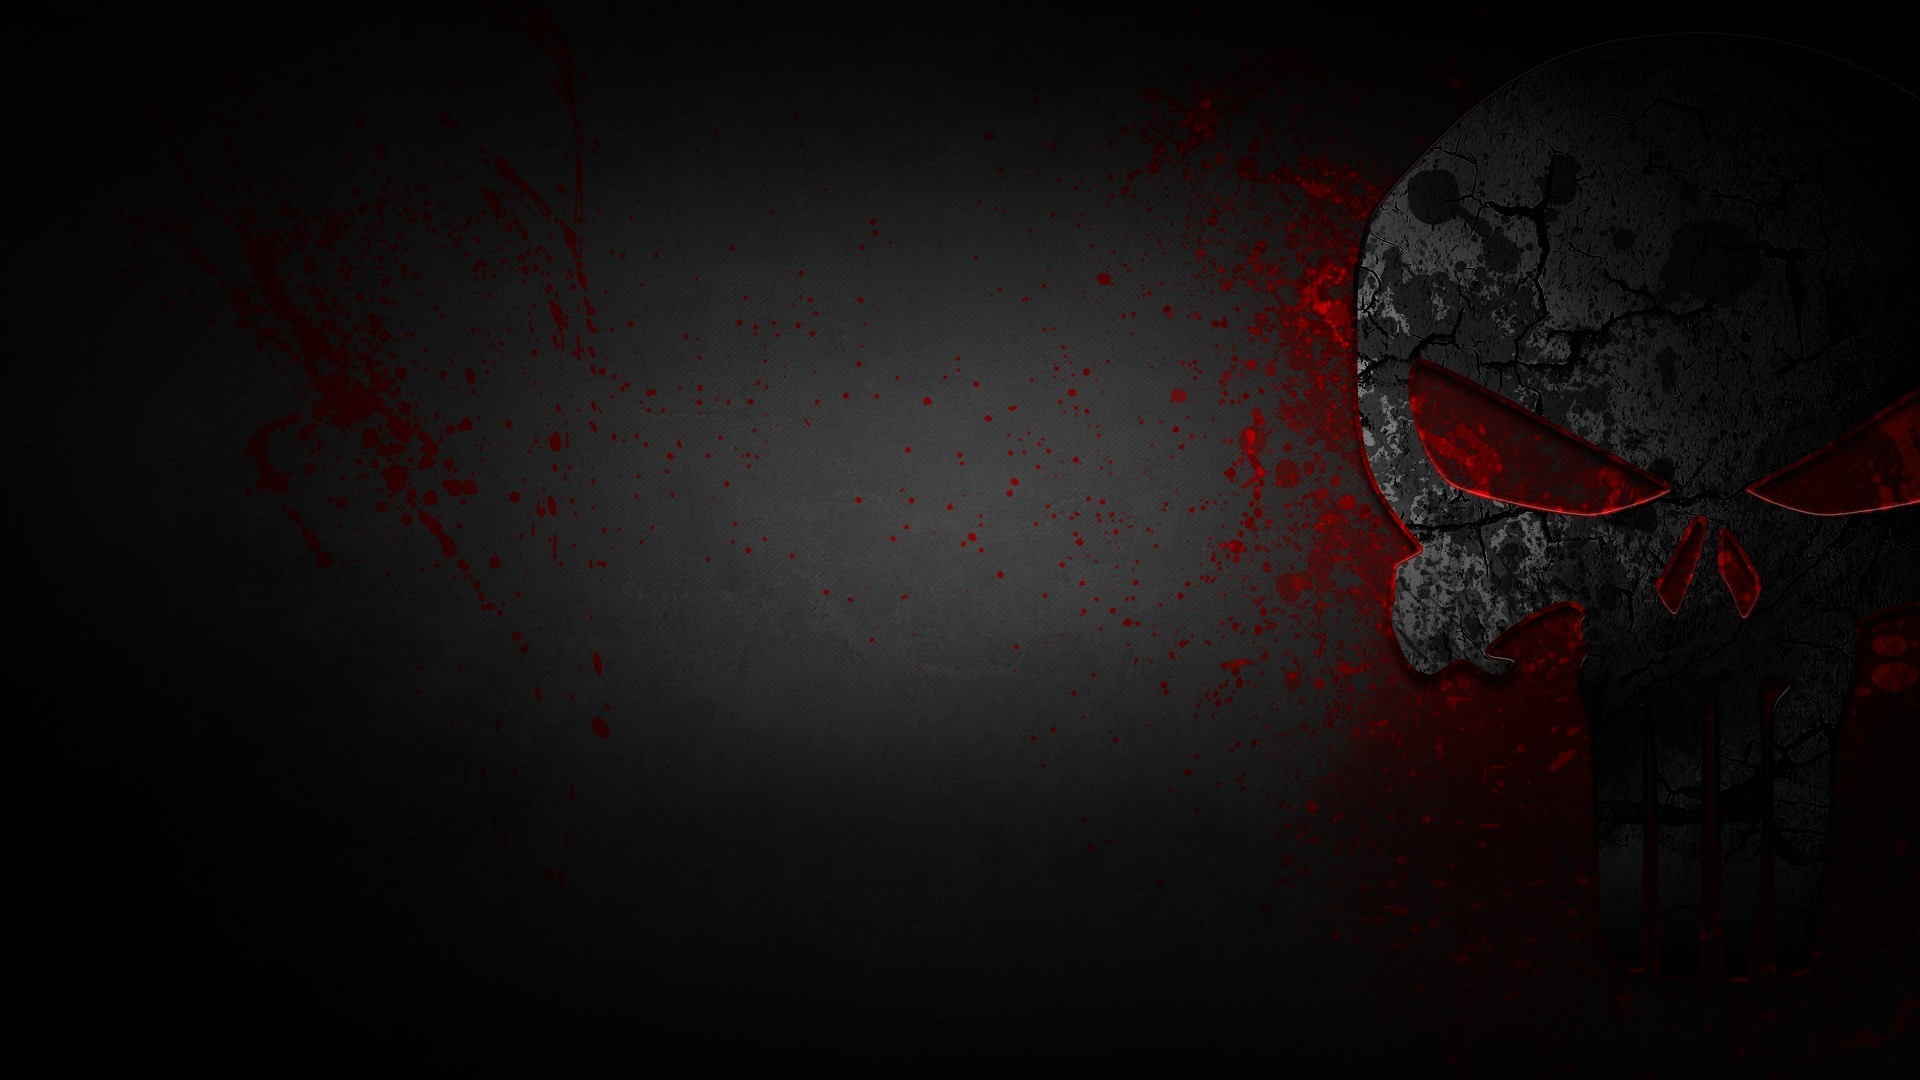 1920x1080 Punisher Skull Wallpaper Related Keywords & Suggestions - Punisher .